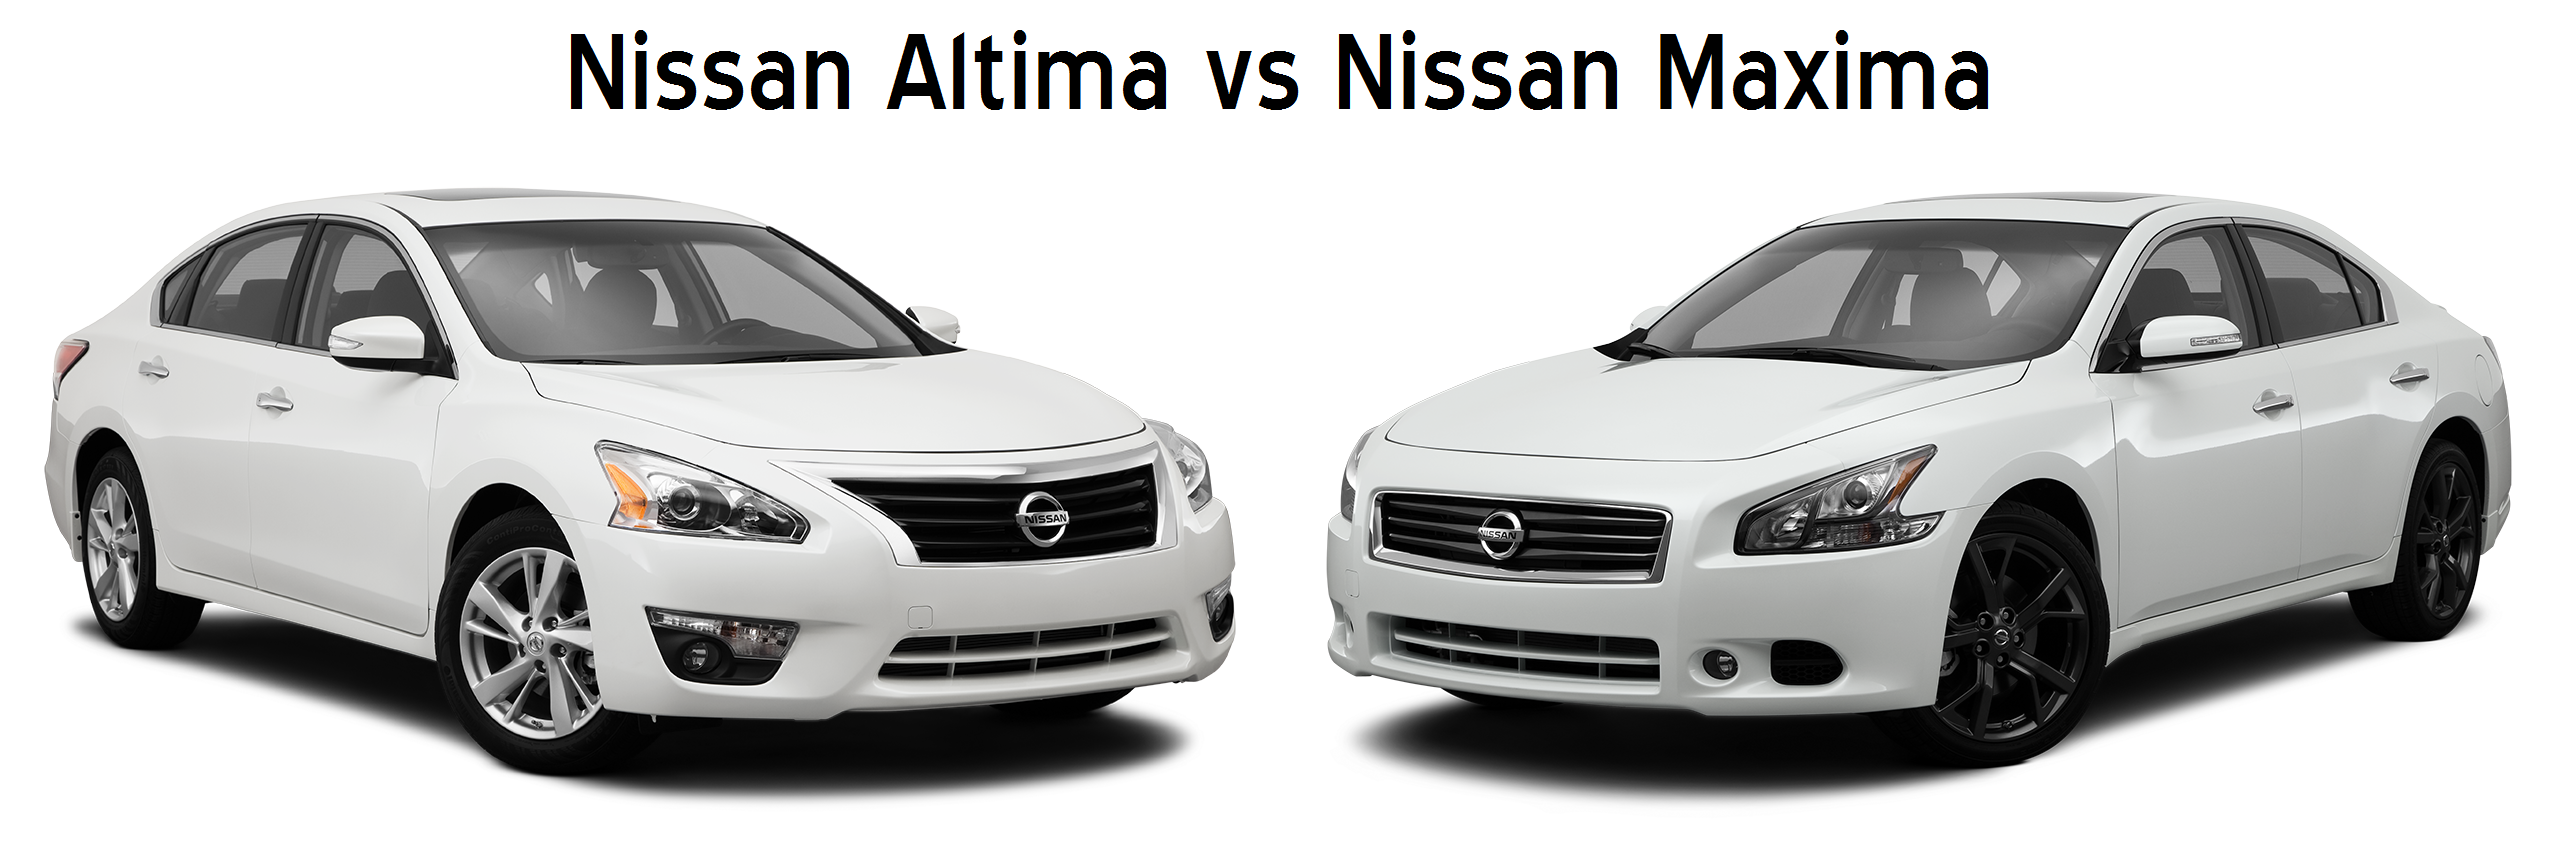 nissan altima vs nissan maxima difference